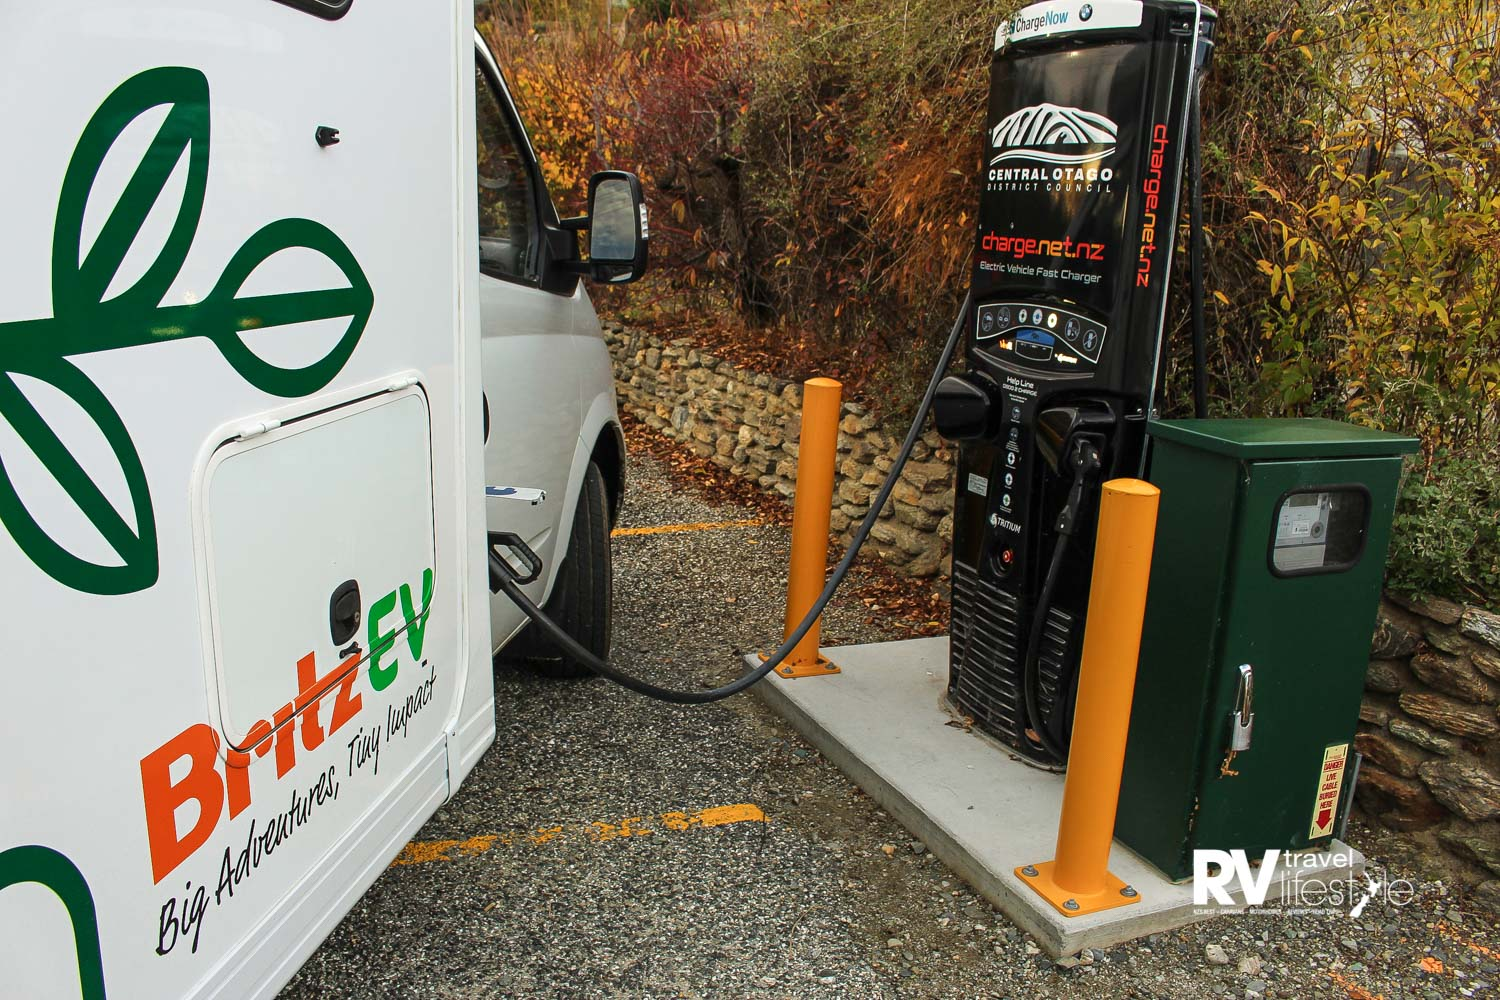 Charging is simple and straightforward. On this trip the ChargeNet network was used. Simple and easy